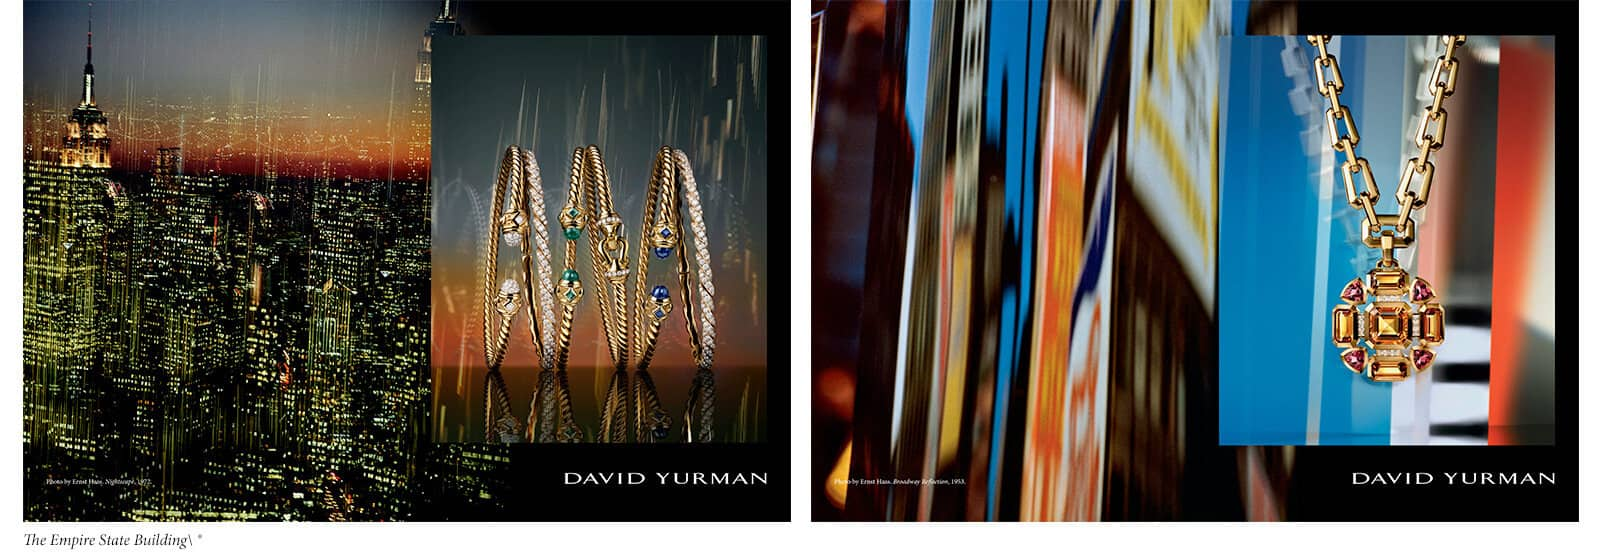 A quote from Edward Steichen is placed below two colorful spreads from the David Yurman Fall 2019 ad campaign, each juxtaposing a Haas image of NYC with a photo of 18K gold bracelets or a pendant necklace.